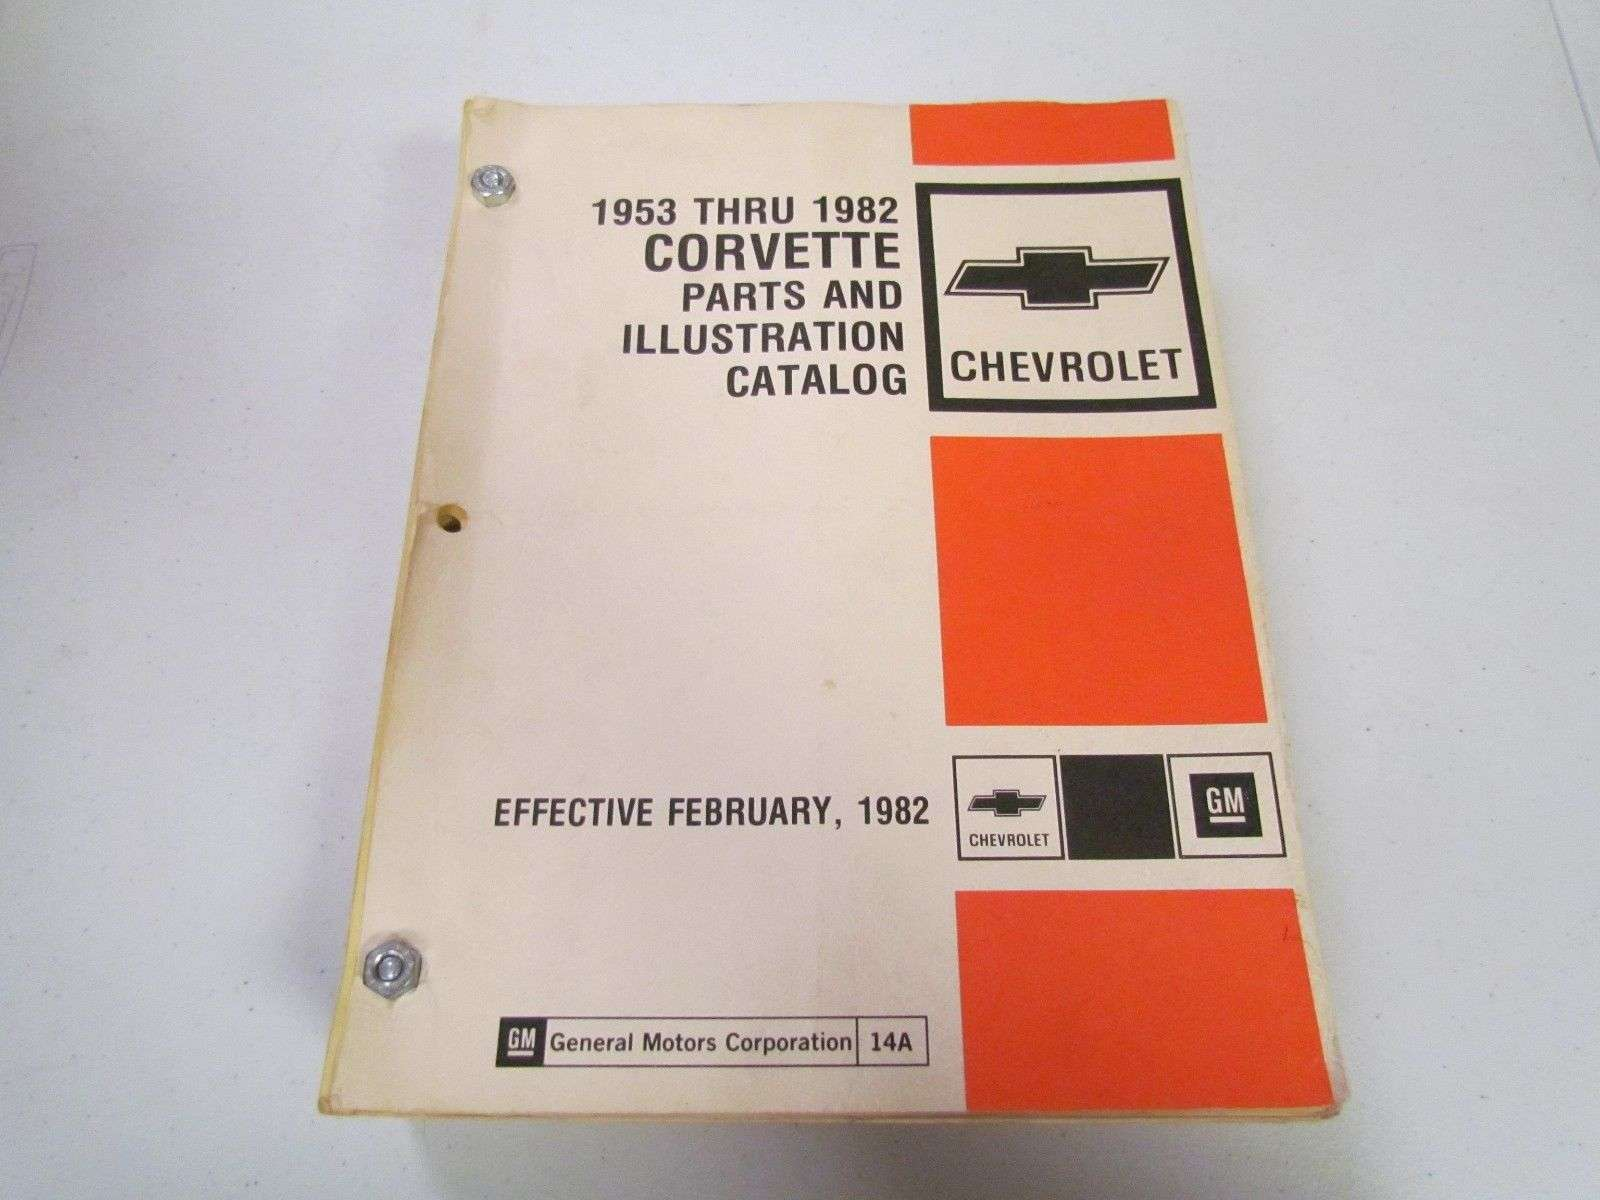 1969 Chevrolet Corvette Parts Catalog Manual